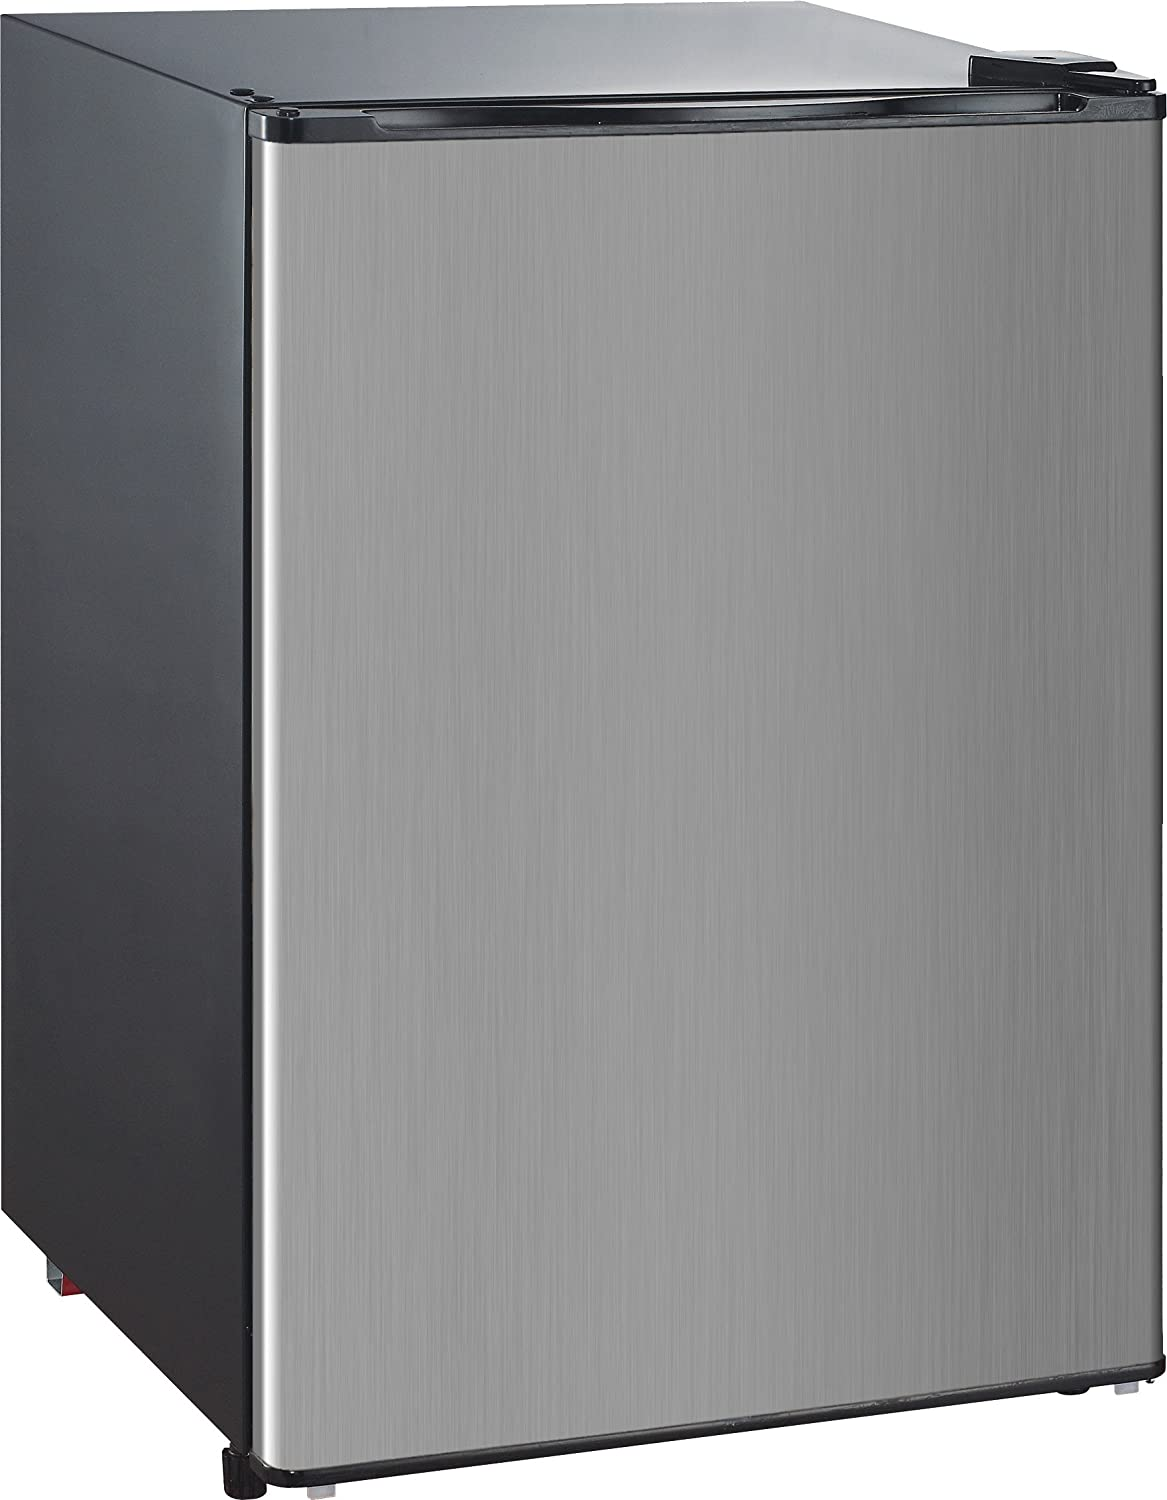 Kuche Bar Fridge Review Best Bar Fridge And Refrigerator With Ice Maker Detailed Review